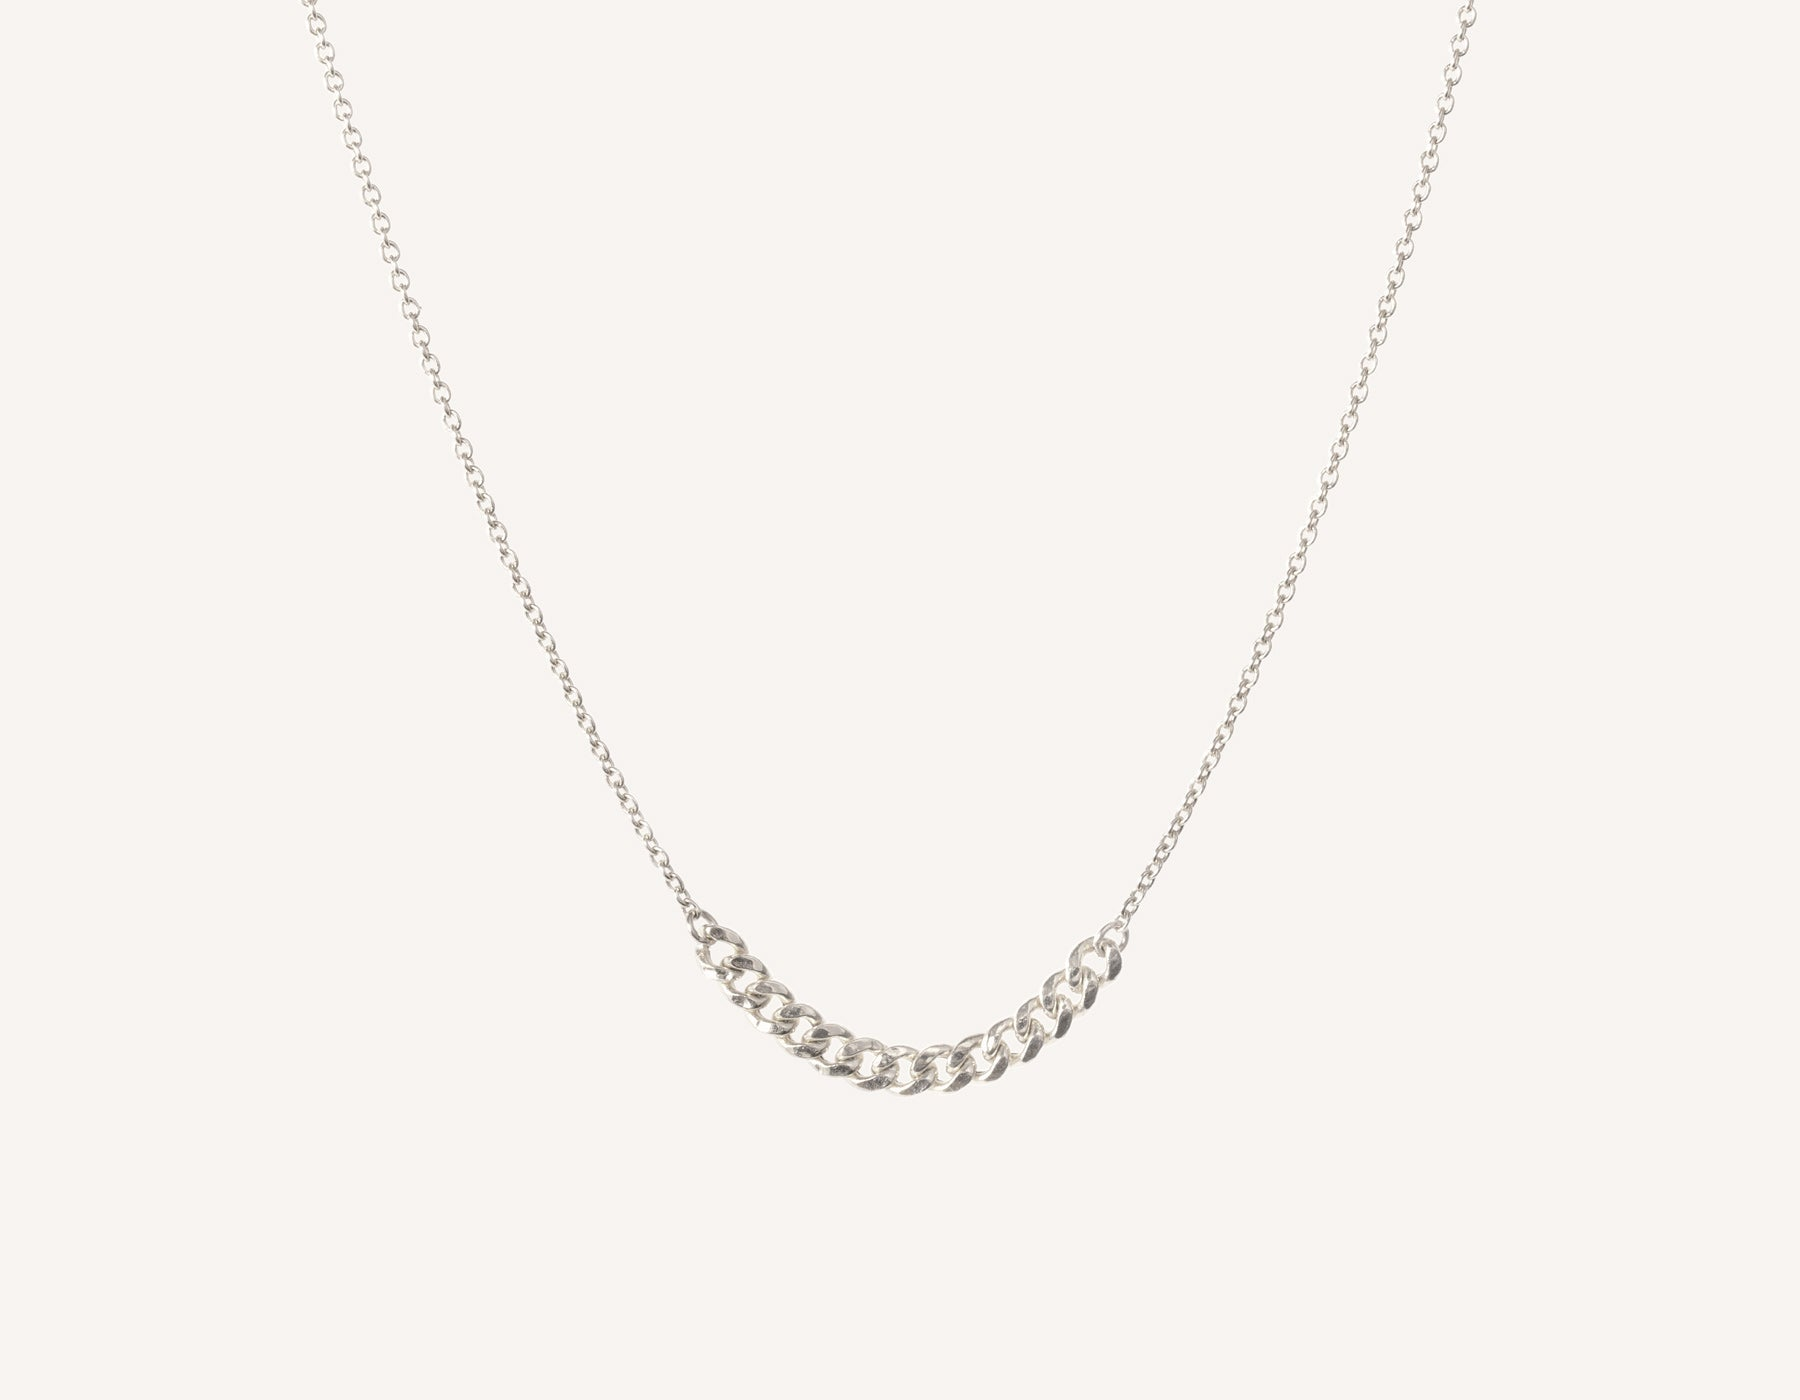 Simple classic chain 14k solid gold Interlink Necklace Vrai and Oro, 14K White Gold